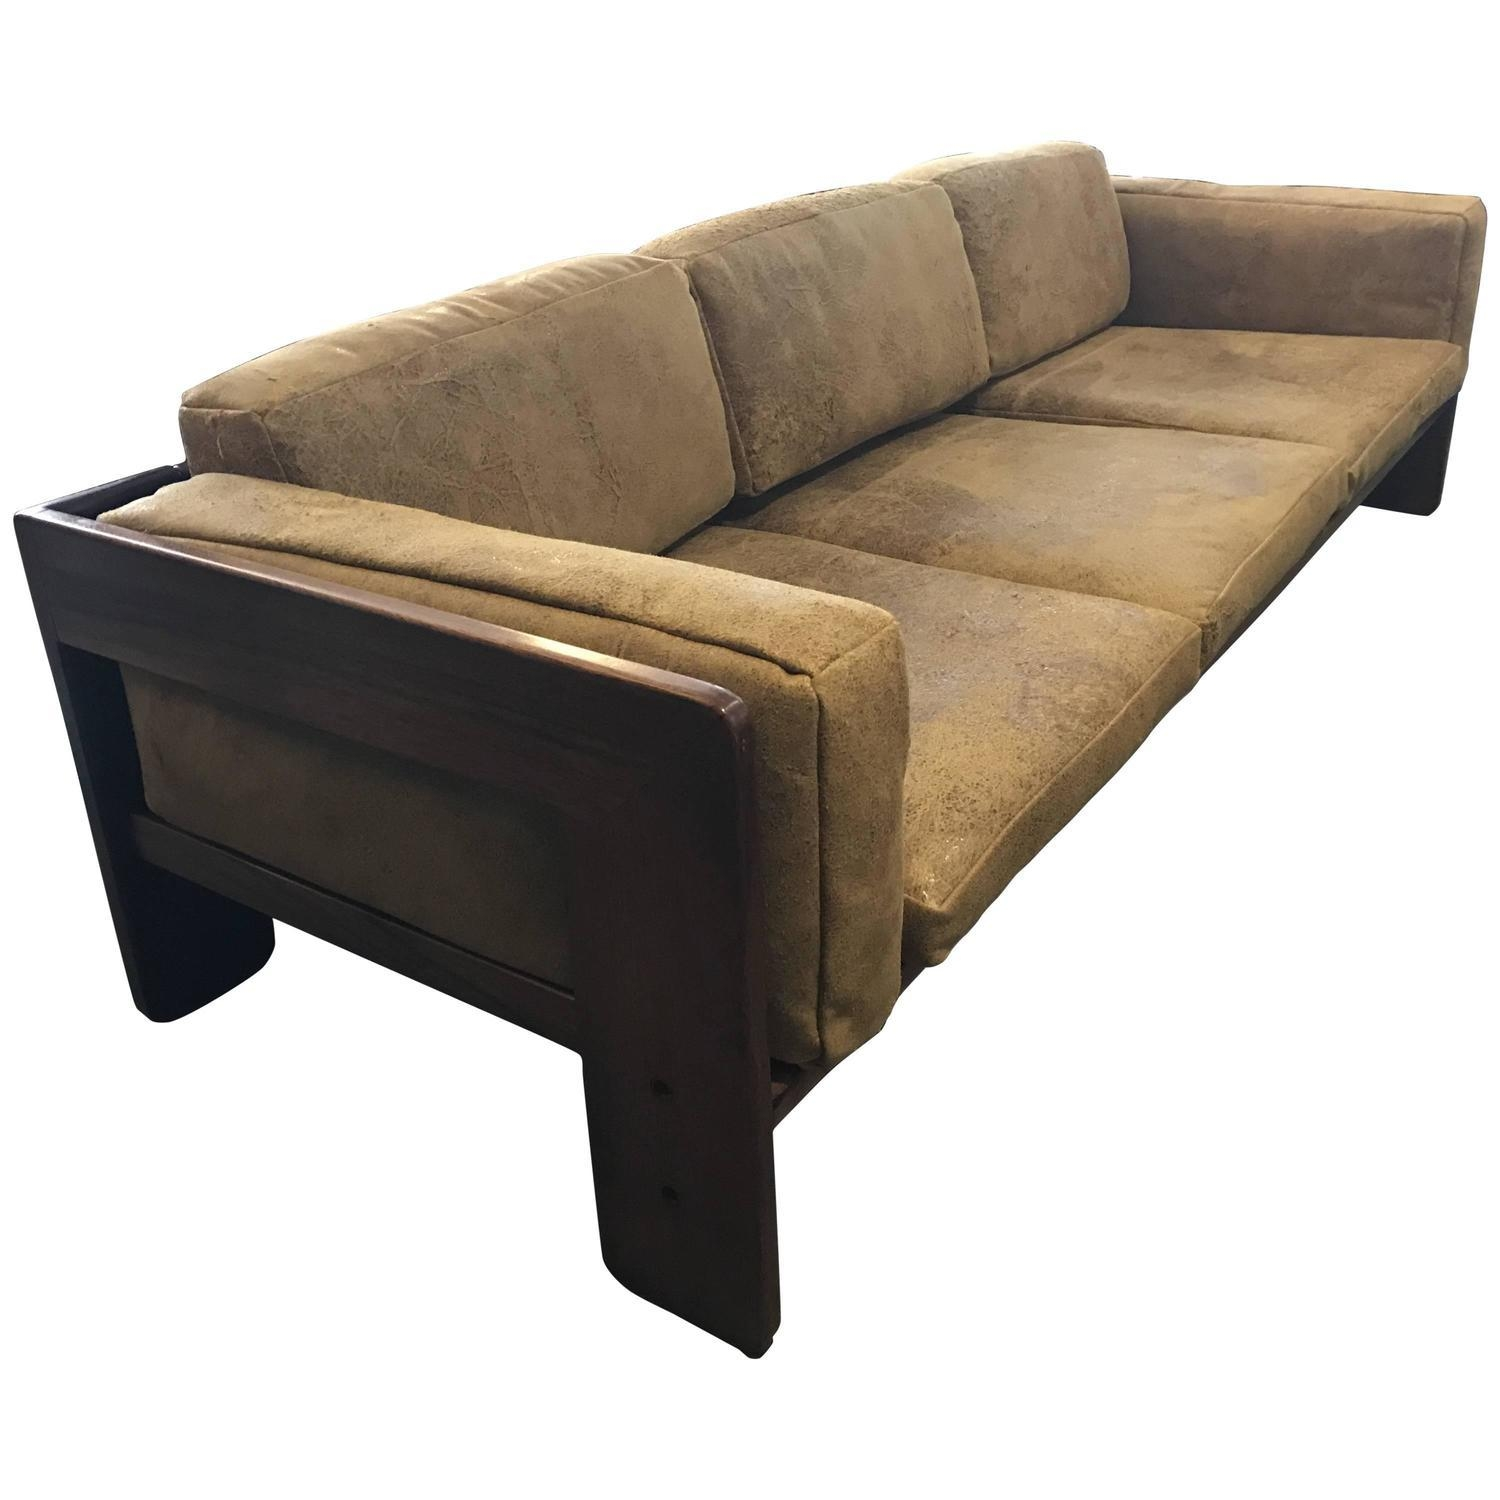 Tobia Scarpa Knoll Bastiano Rosewood Sofa Vintage Leather Cushions Pertaining To Knoll Sofas (Image 18 of 20)